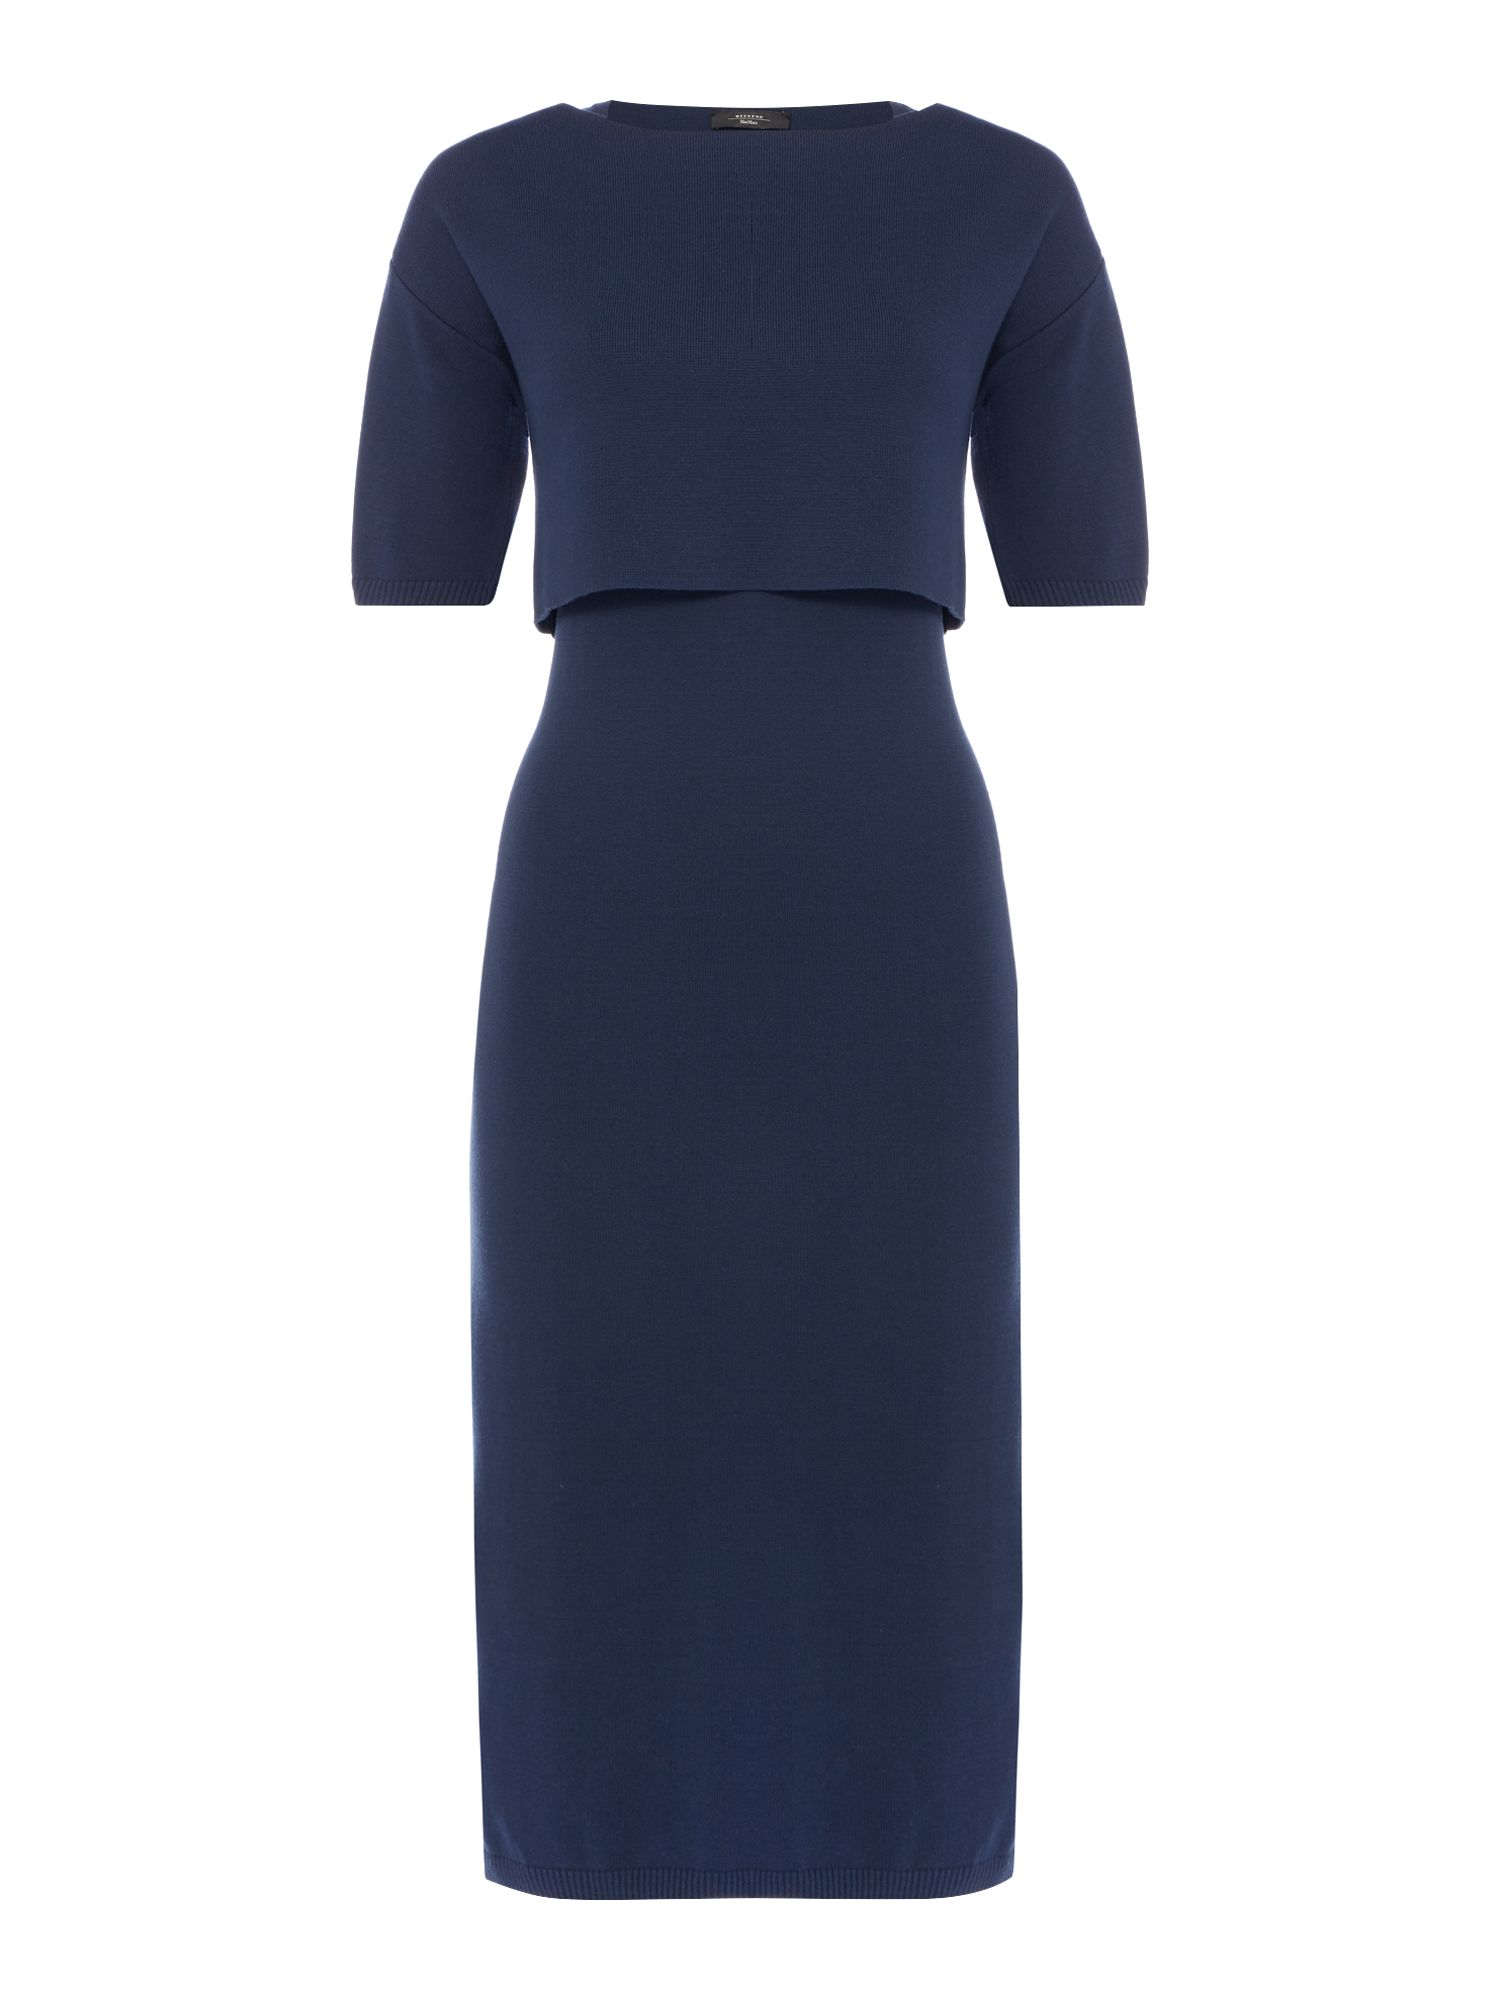 Max Mara Weekend Calata Two Piece Short Sleeve Dress, Ultramarine